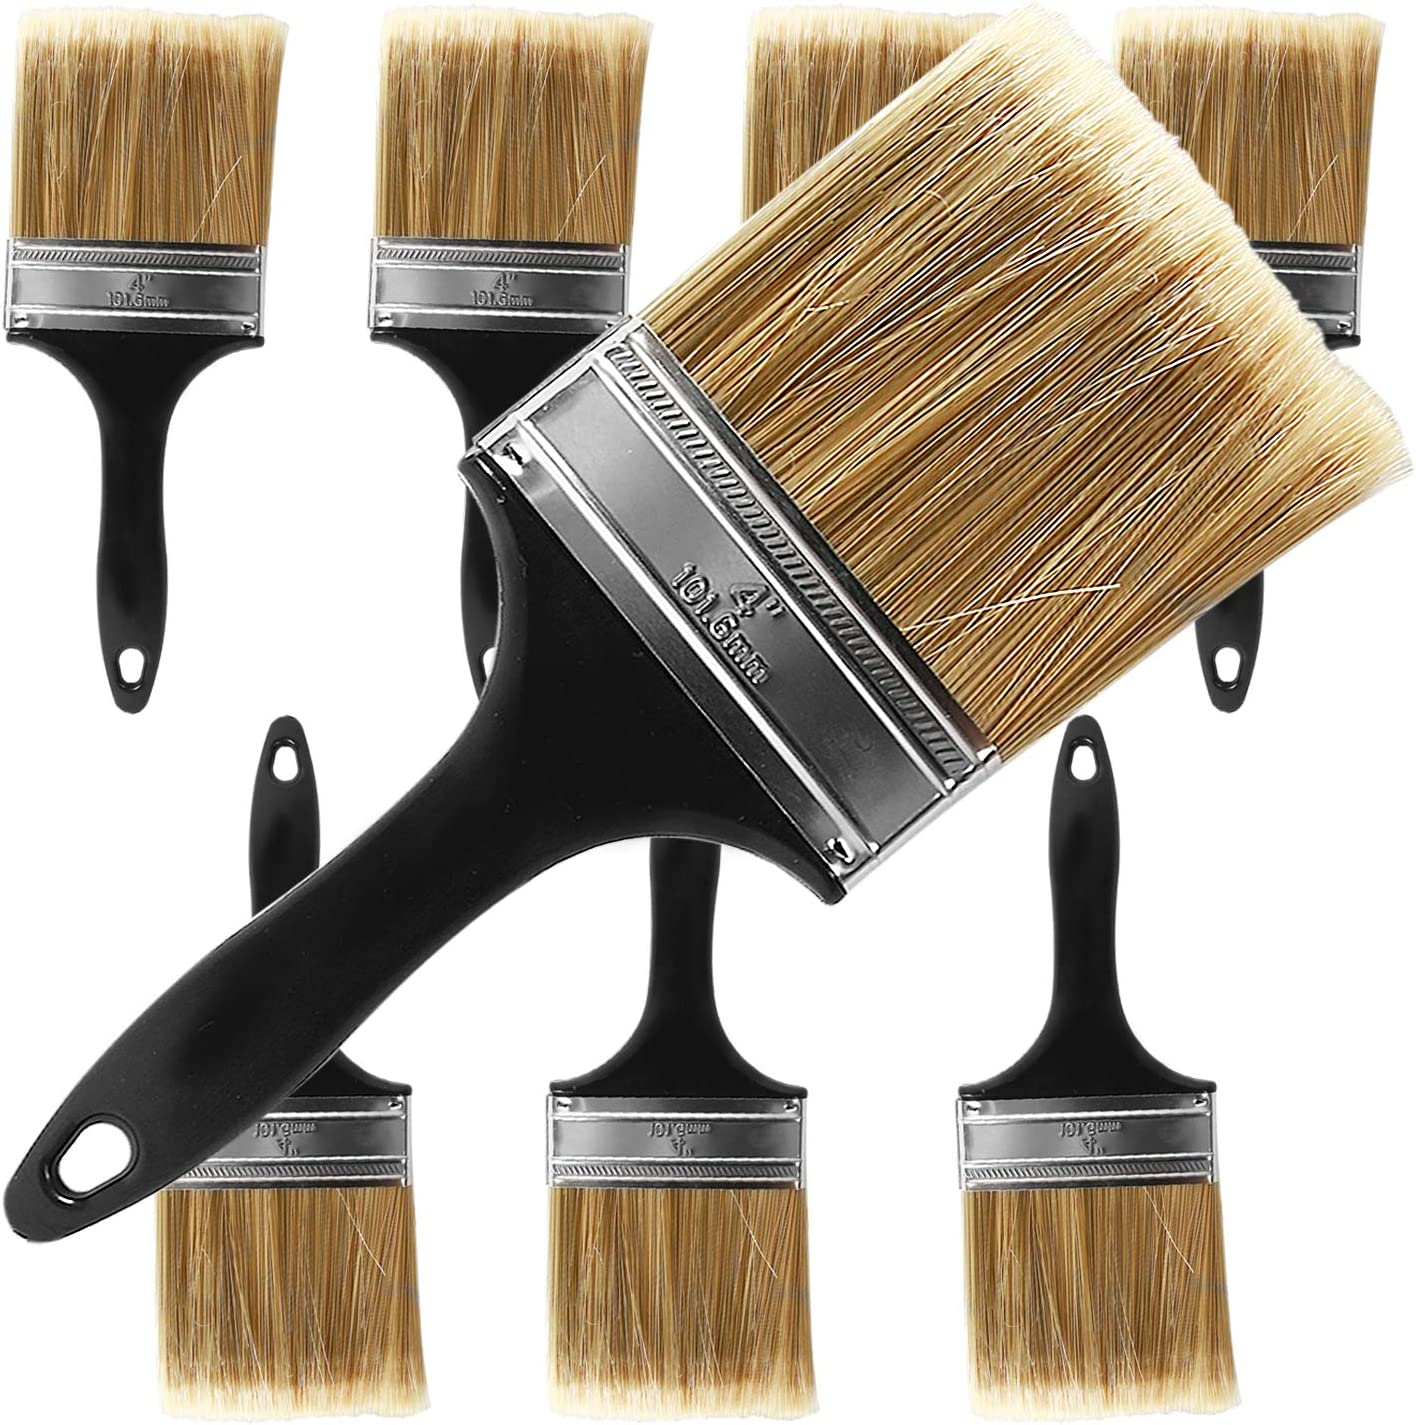 KINJOEK Paint Brush 8 Packs 4 Inch, Home Wall Trim House Chip Paintbrush Set, Professional Multi-Purpose Home Repair Tools for DIY Paint Stains Varnishes Glues Acrylics Cabinet Deck Fence Edge Door